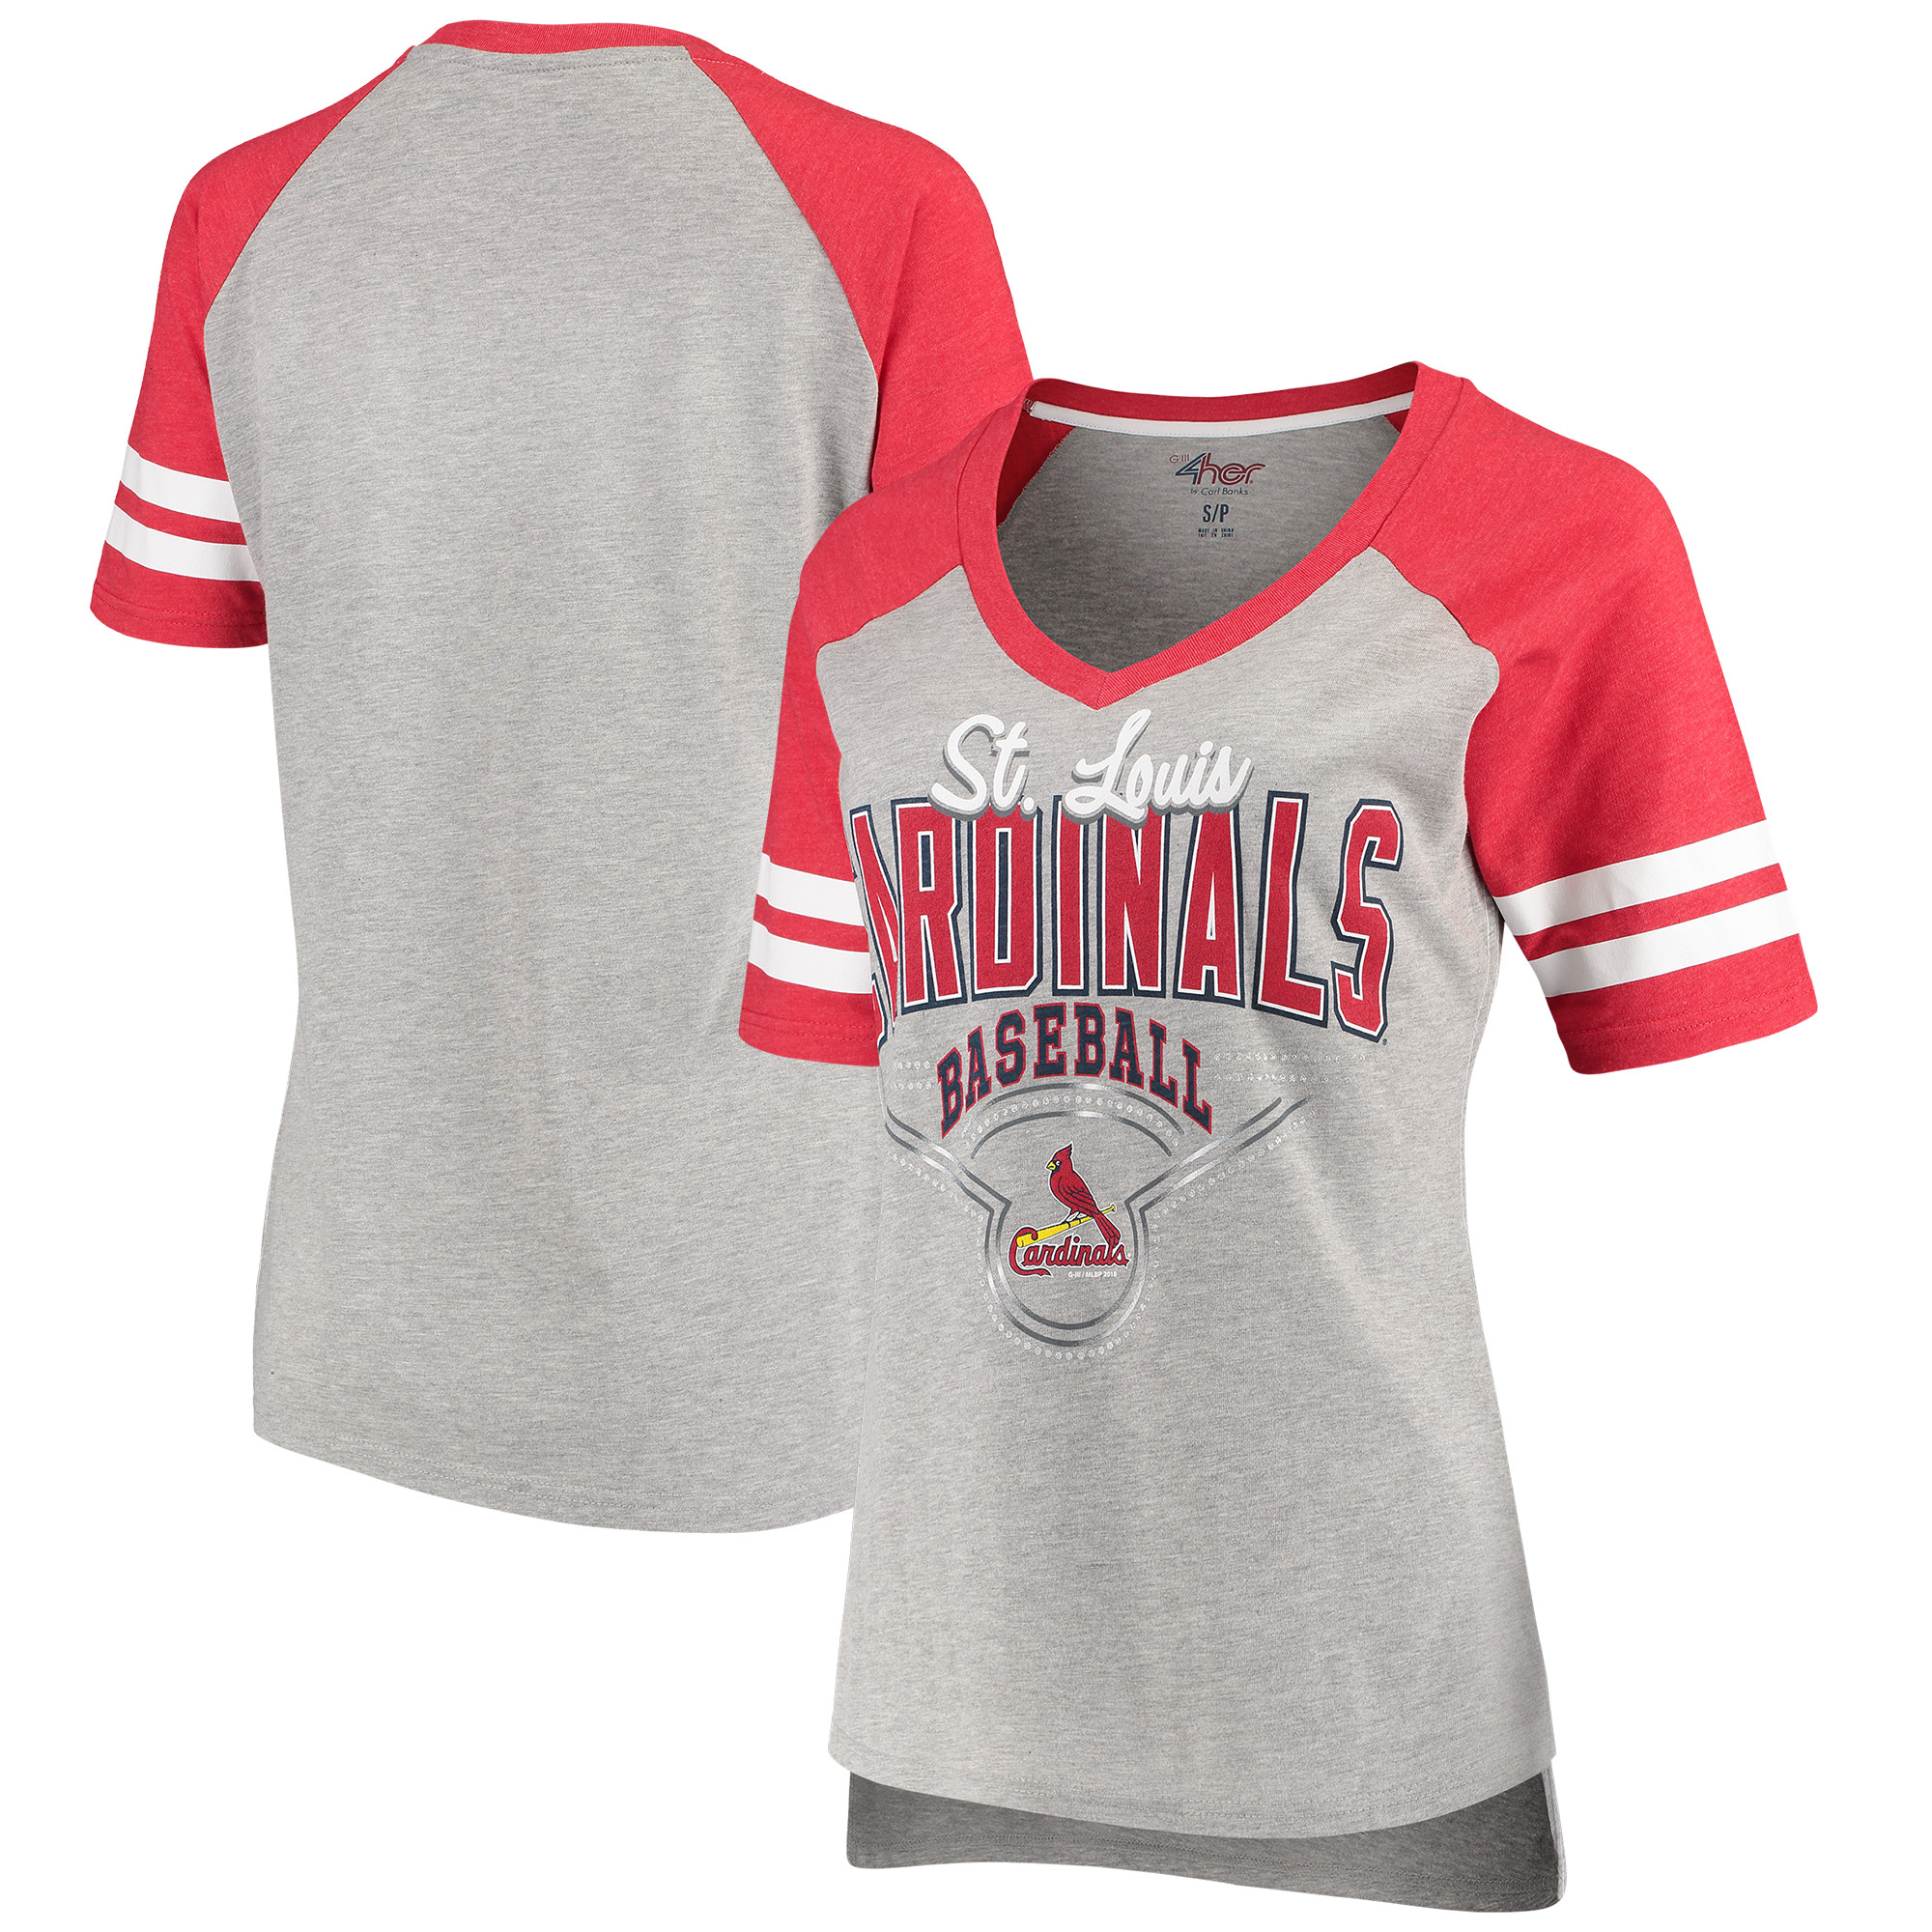 St. Louis Cardinals G-III 4Her by Carl Banks Women's Goal Line T-Shirt - Heathered Gray/Red